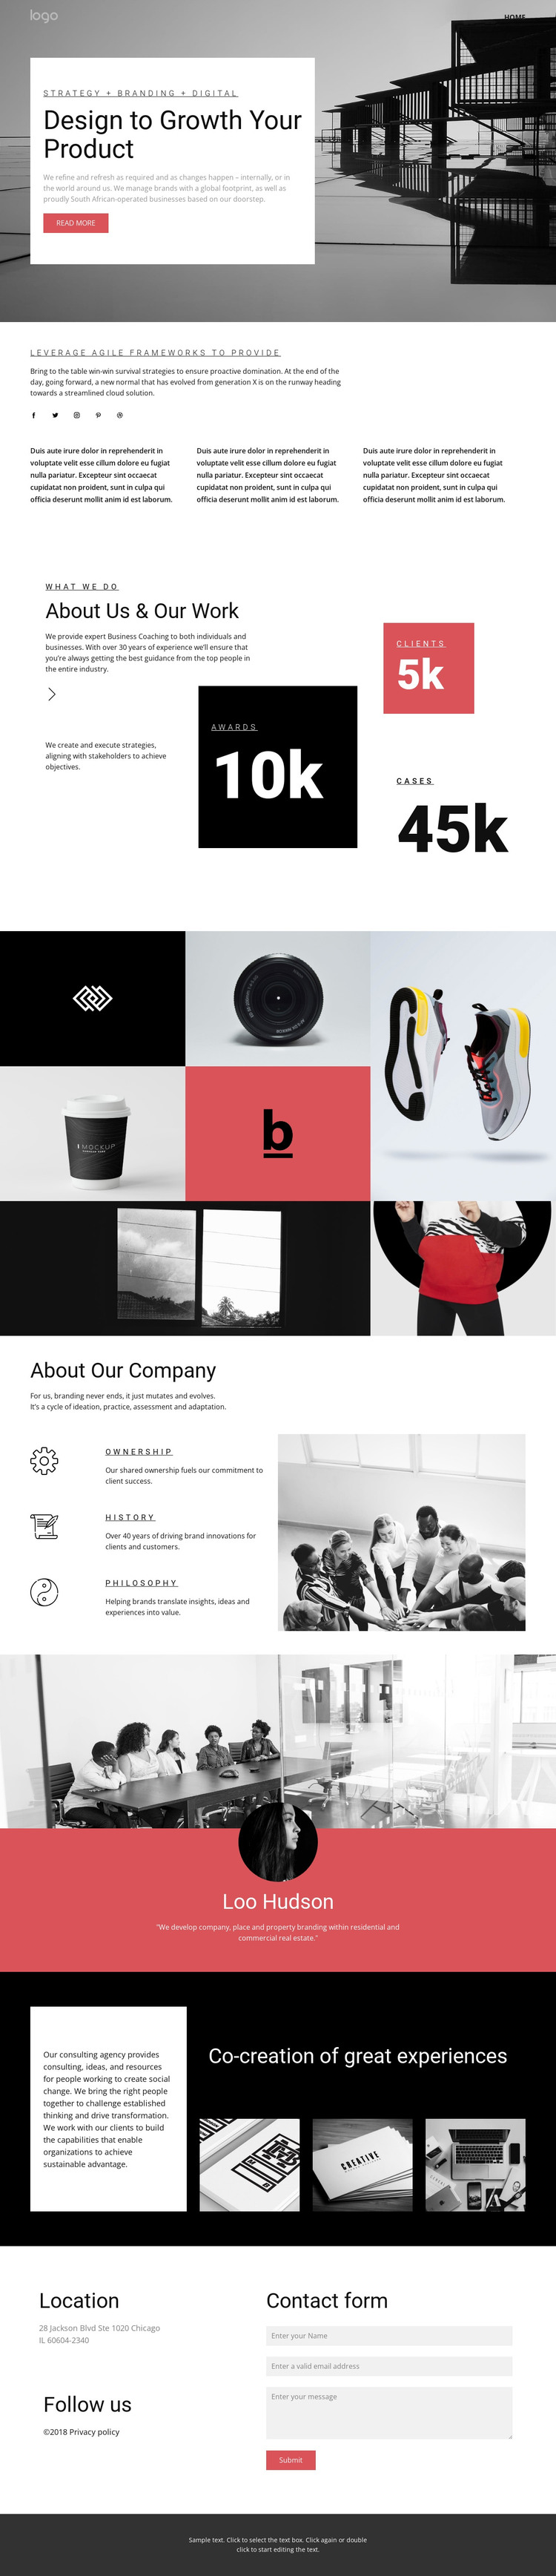 Business growth agency Web Design